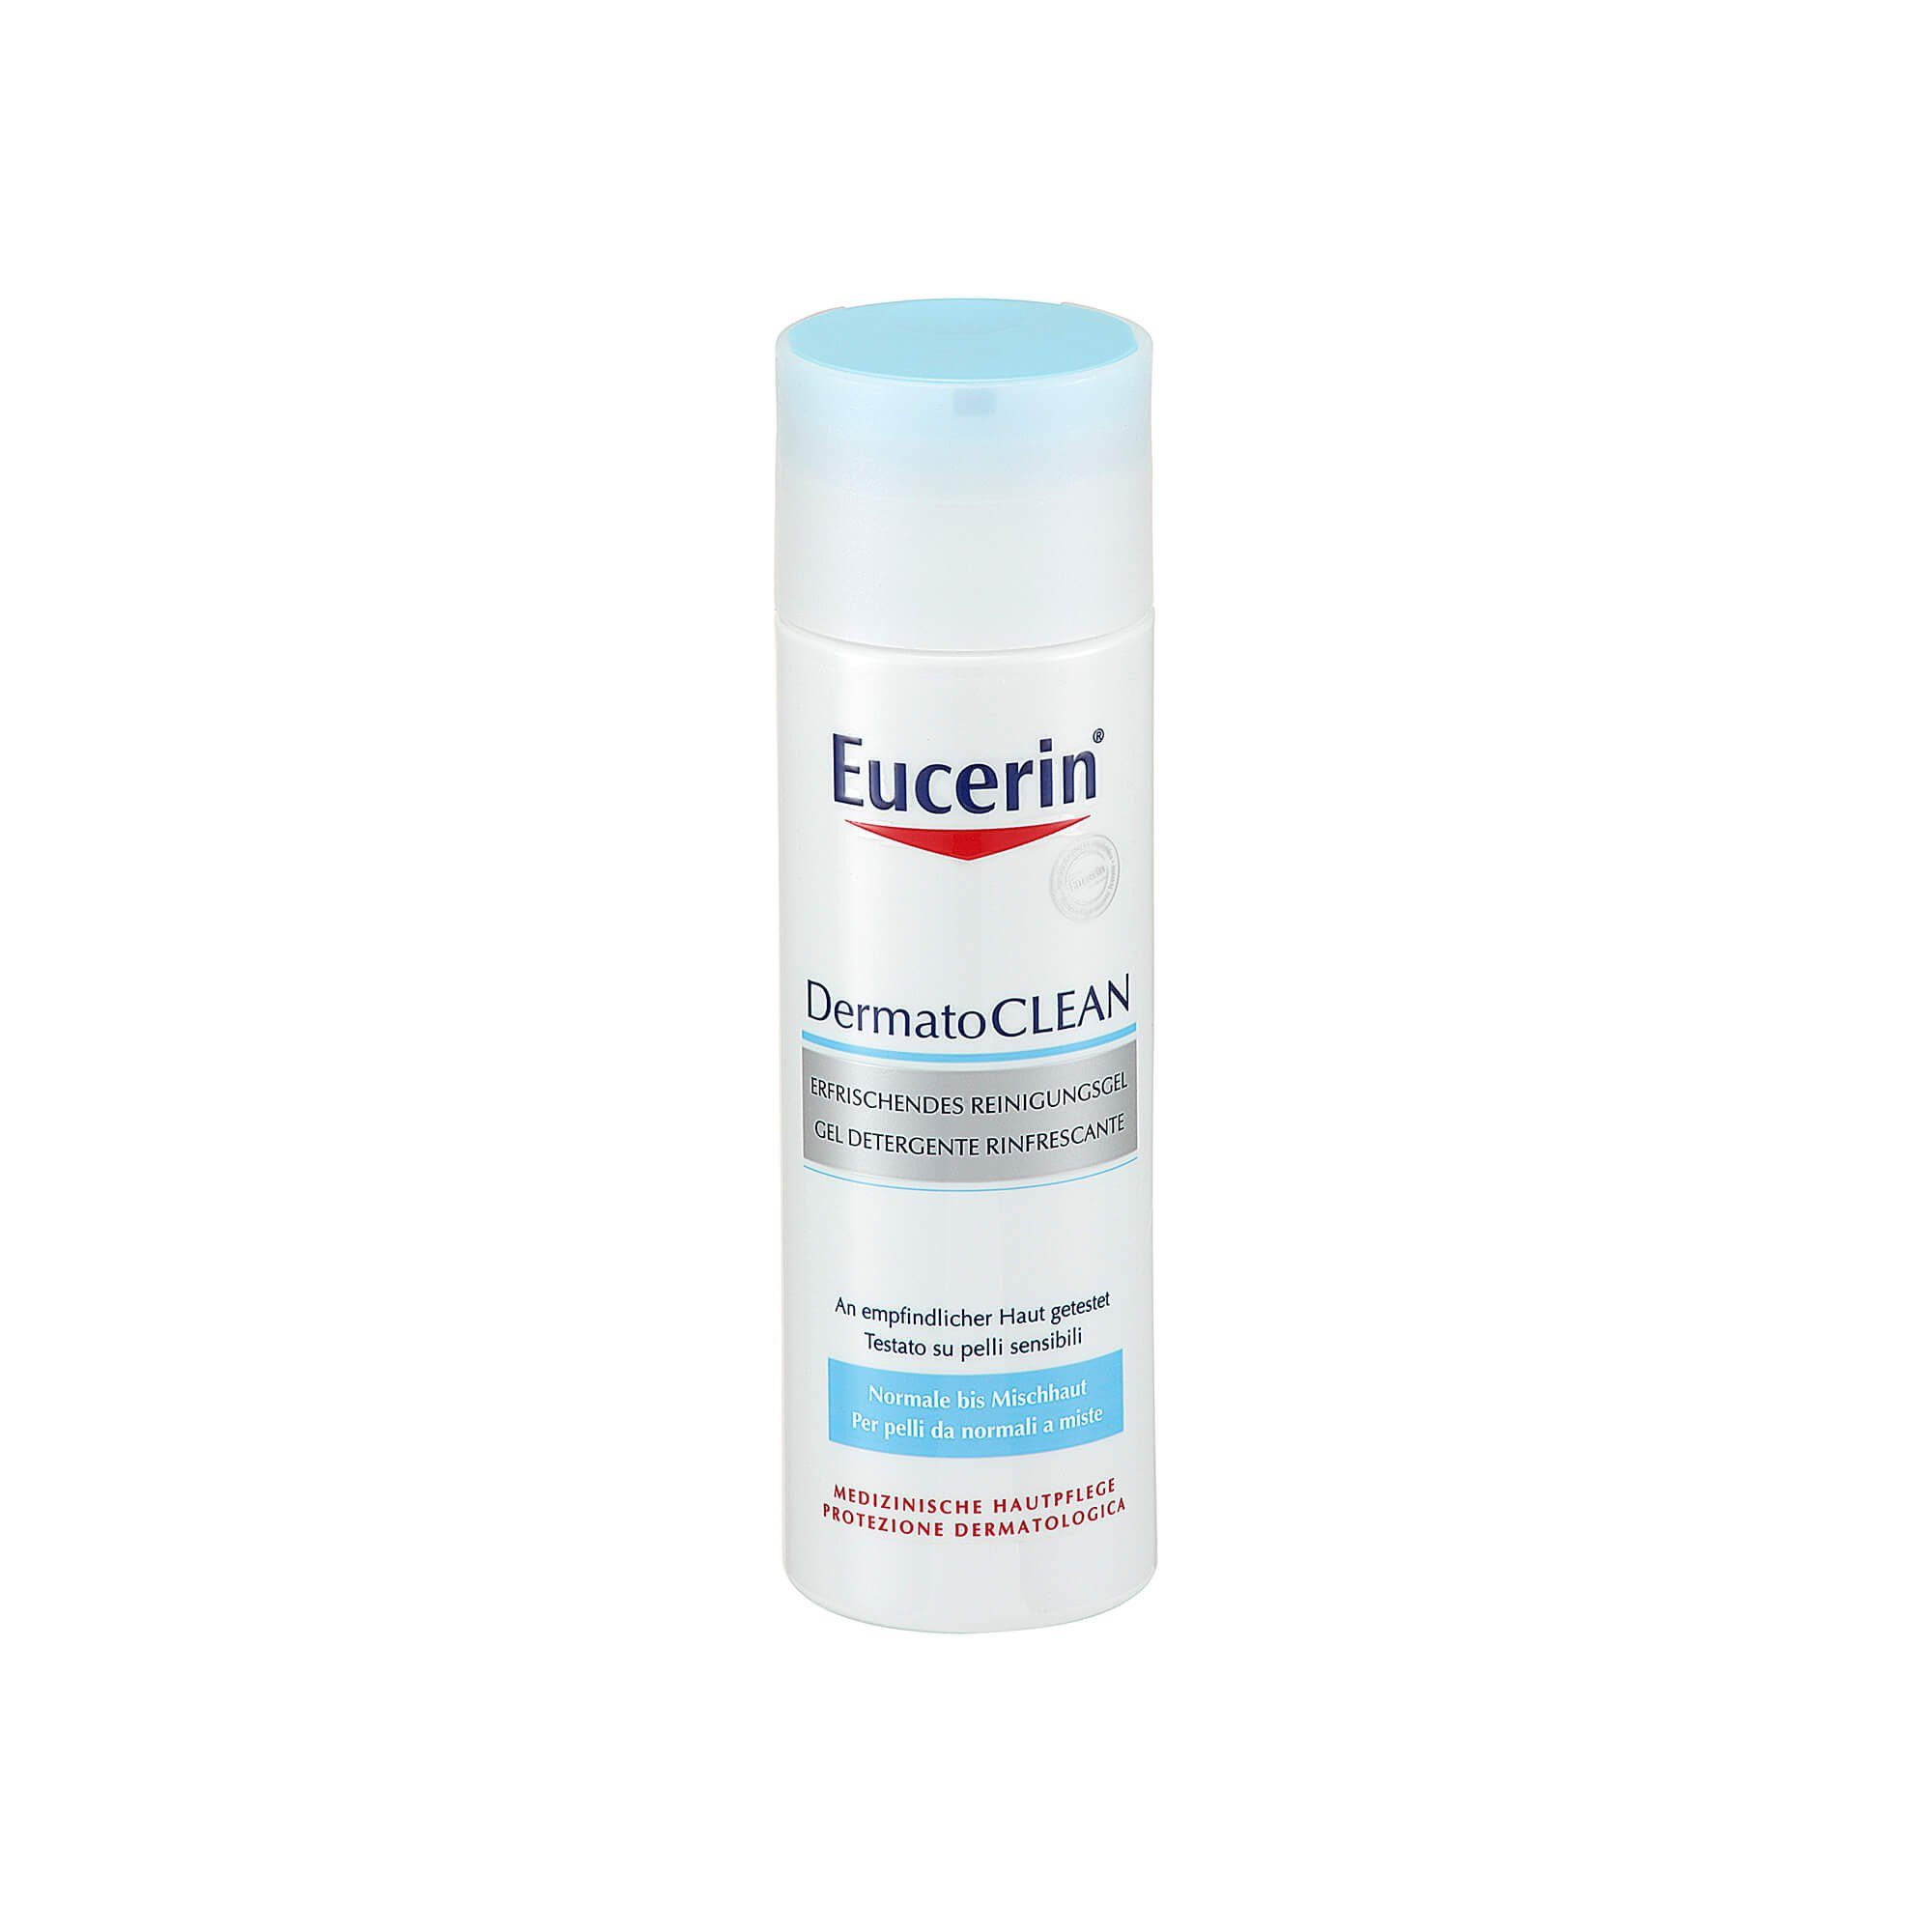 Eucerin Dermatoclean Gel, 200 ml